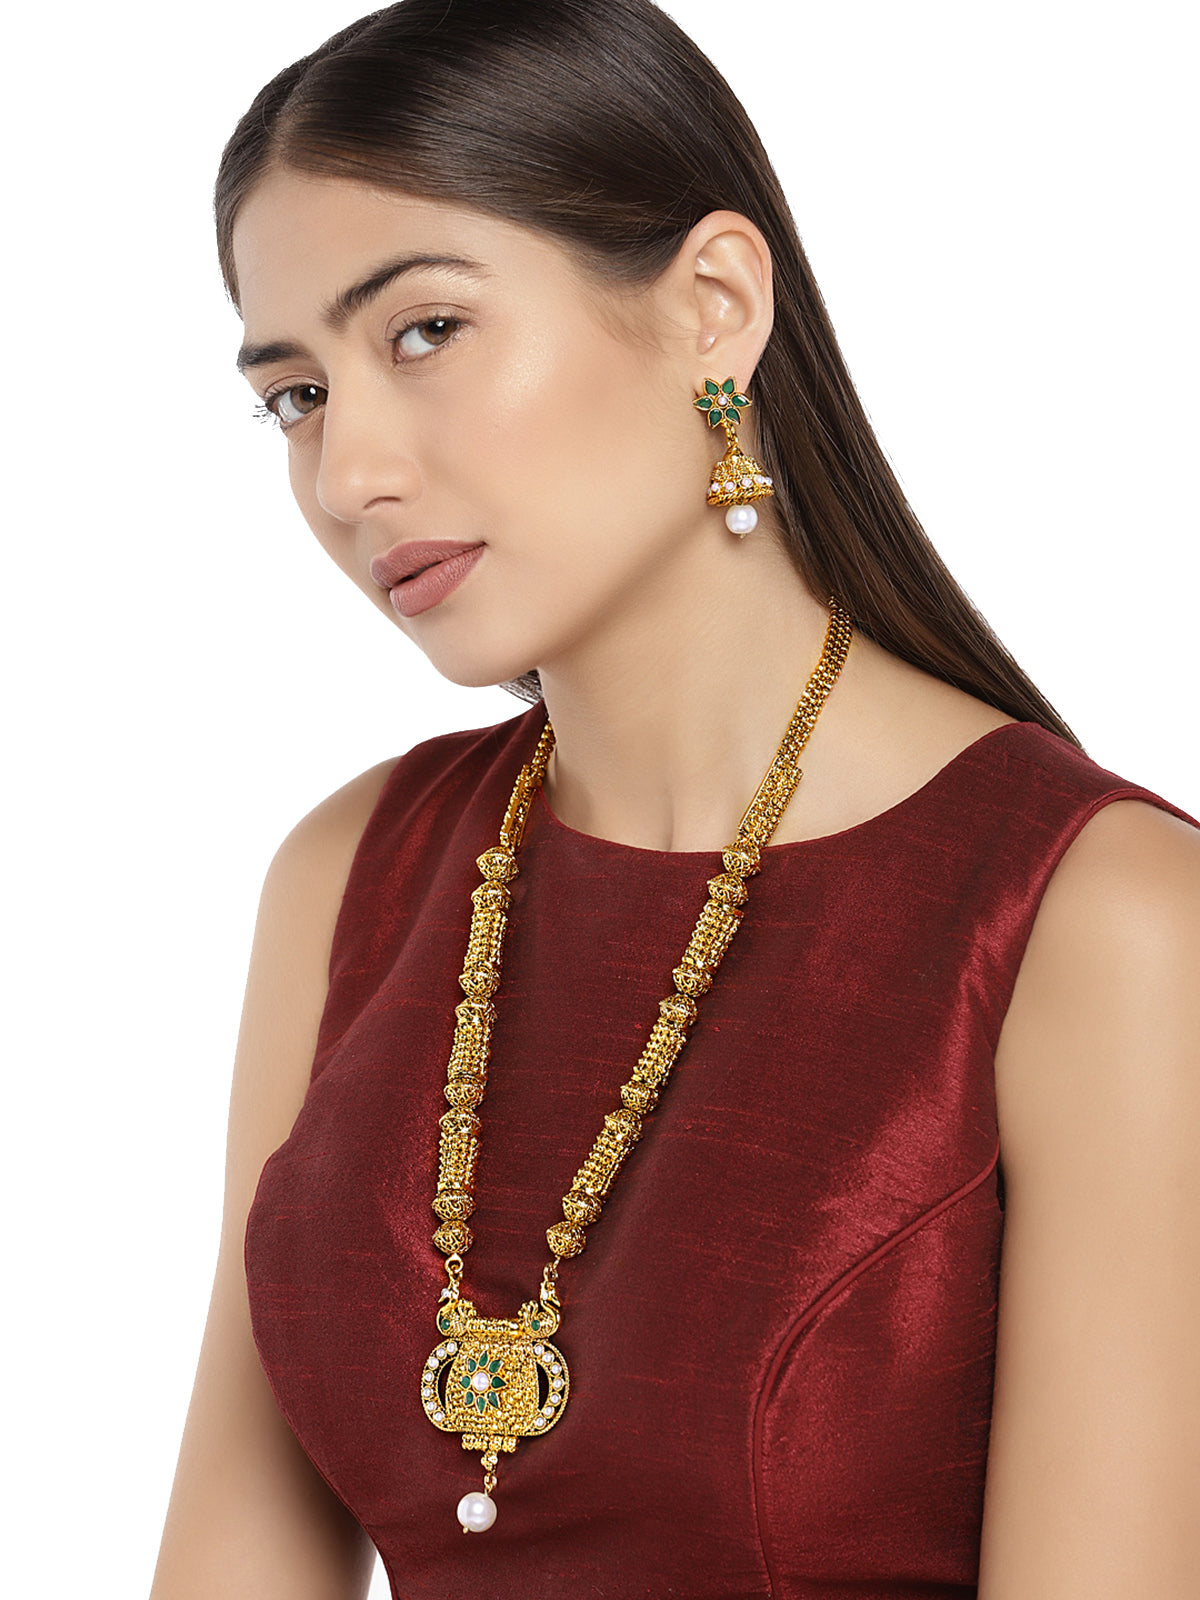 Zaveri Pearls Antique Gold Tone Traditional Necklace Set-ZAVERI PEARLS1-Necklace Set